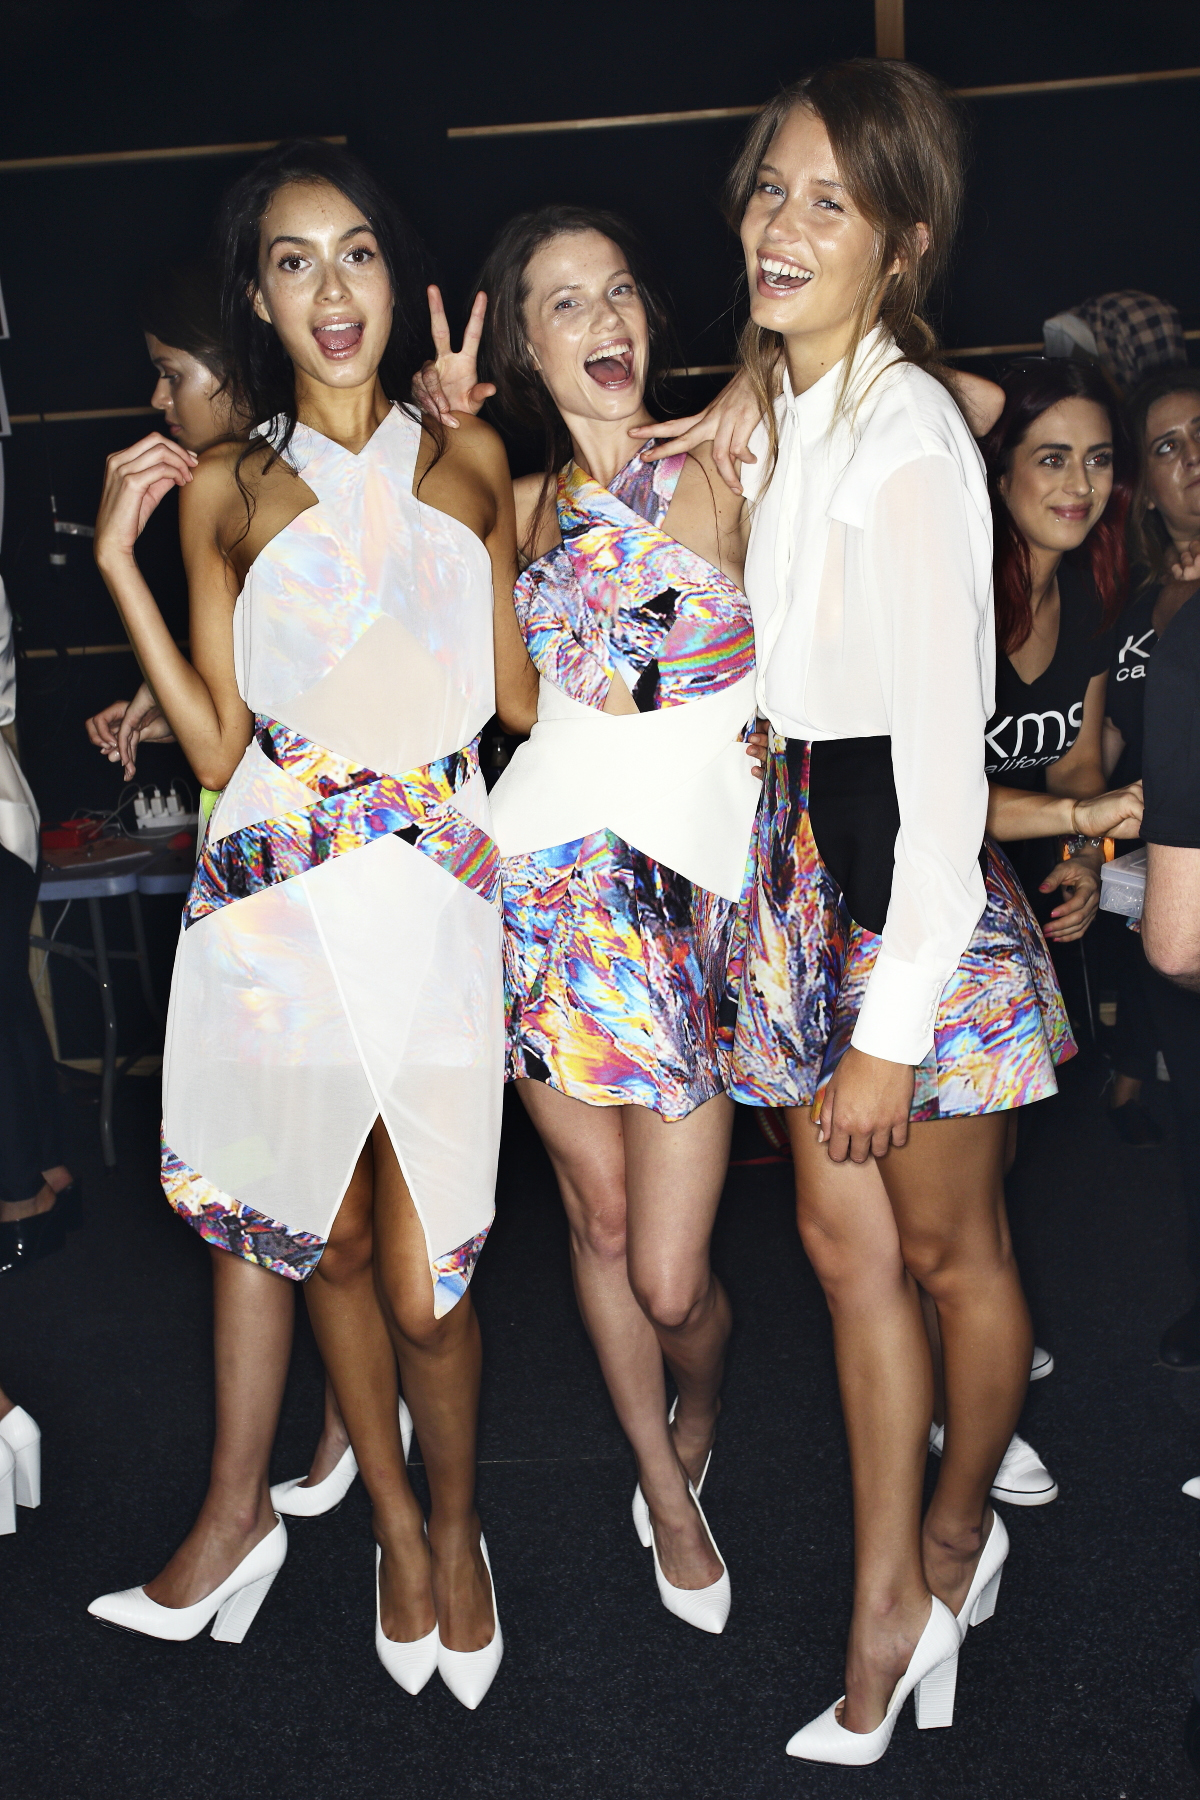 Cameo SS14/15 Fashion Show Sydney Backstage